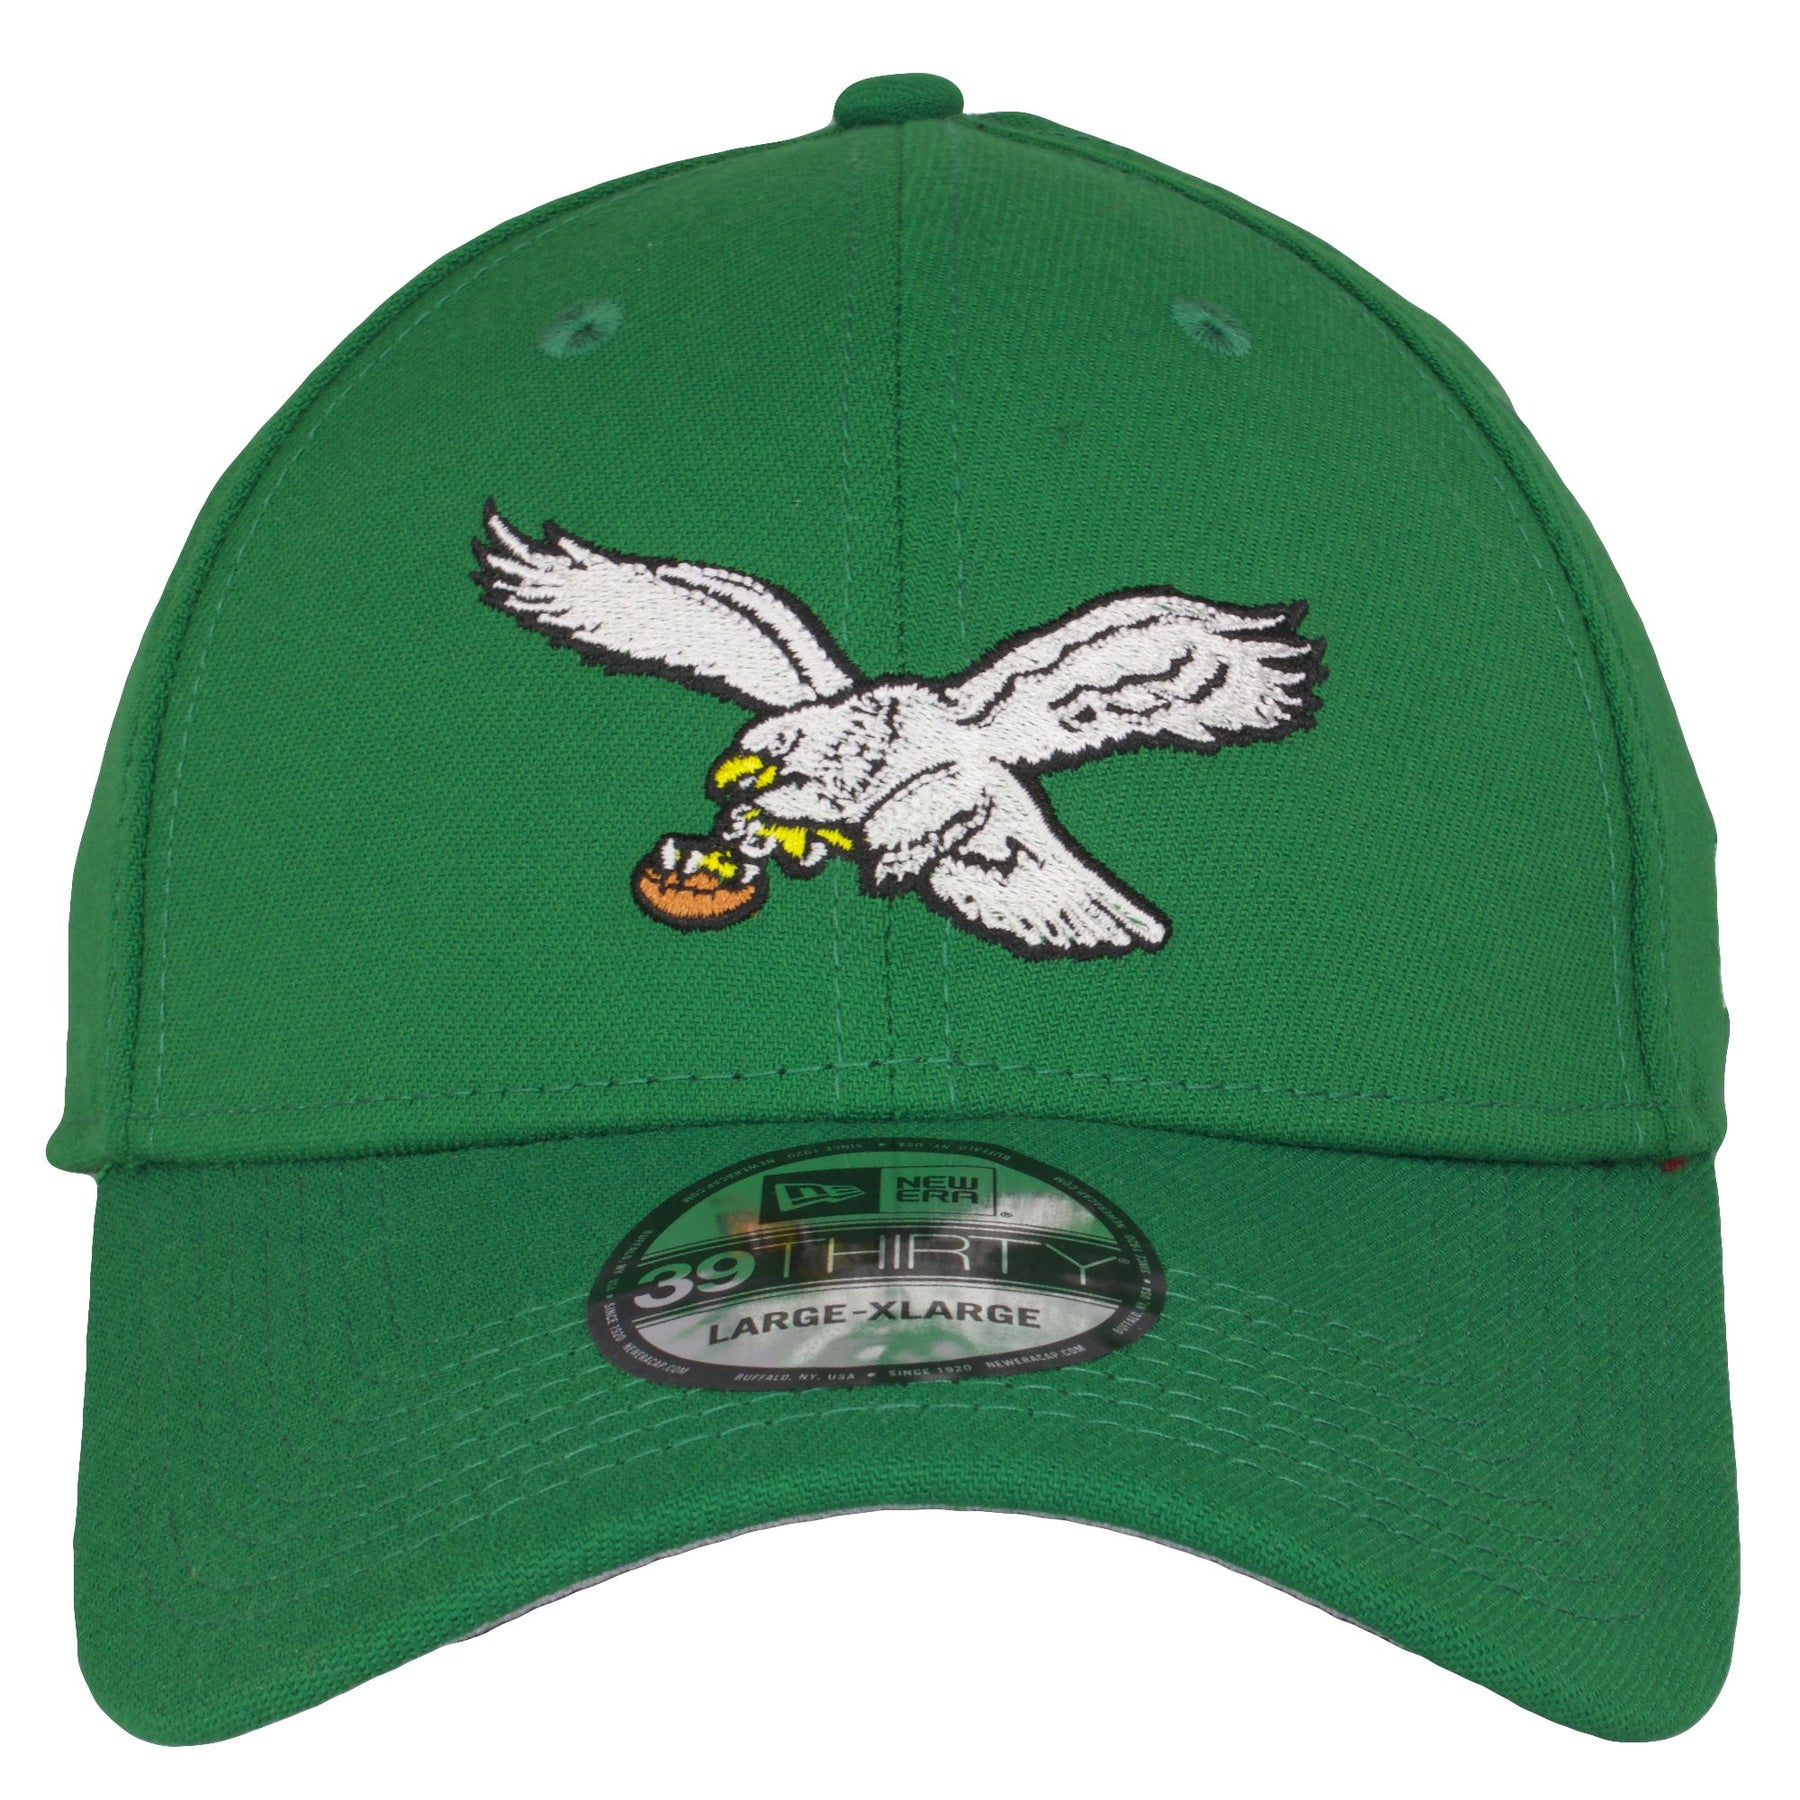 on the front of the Philadelphia Eagles vintage kelly green stretch fit cap  is the eagles 6f113e76d109